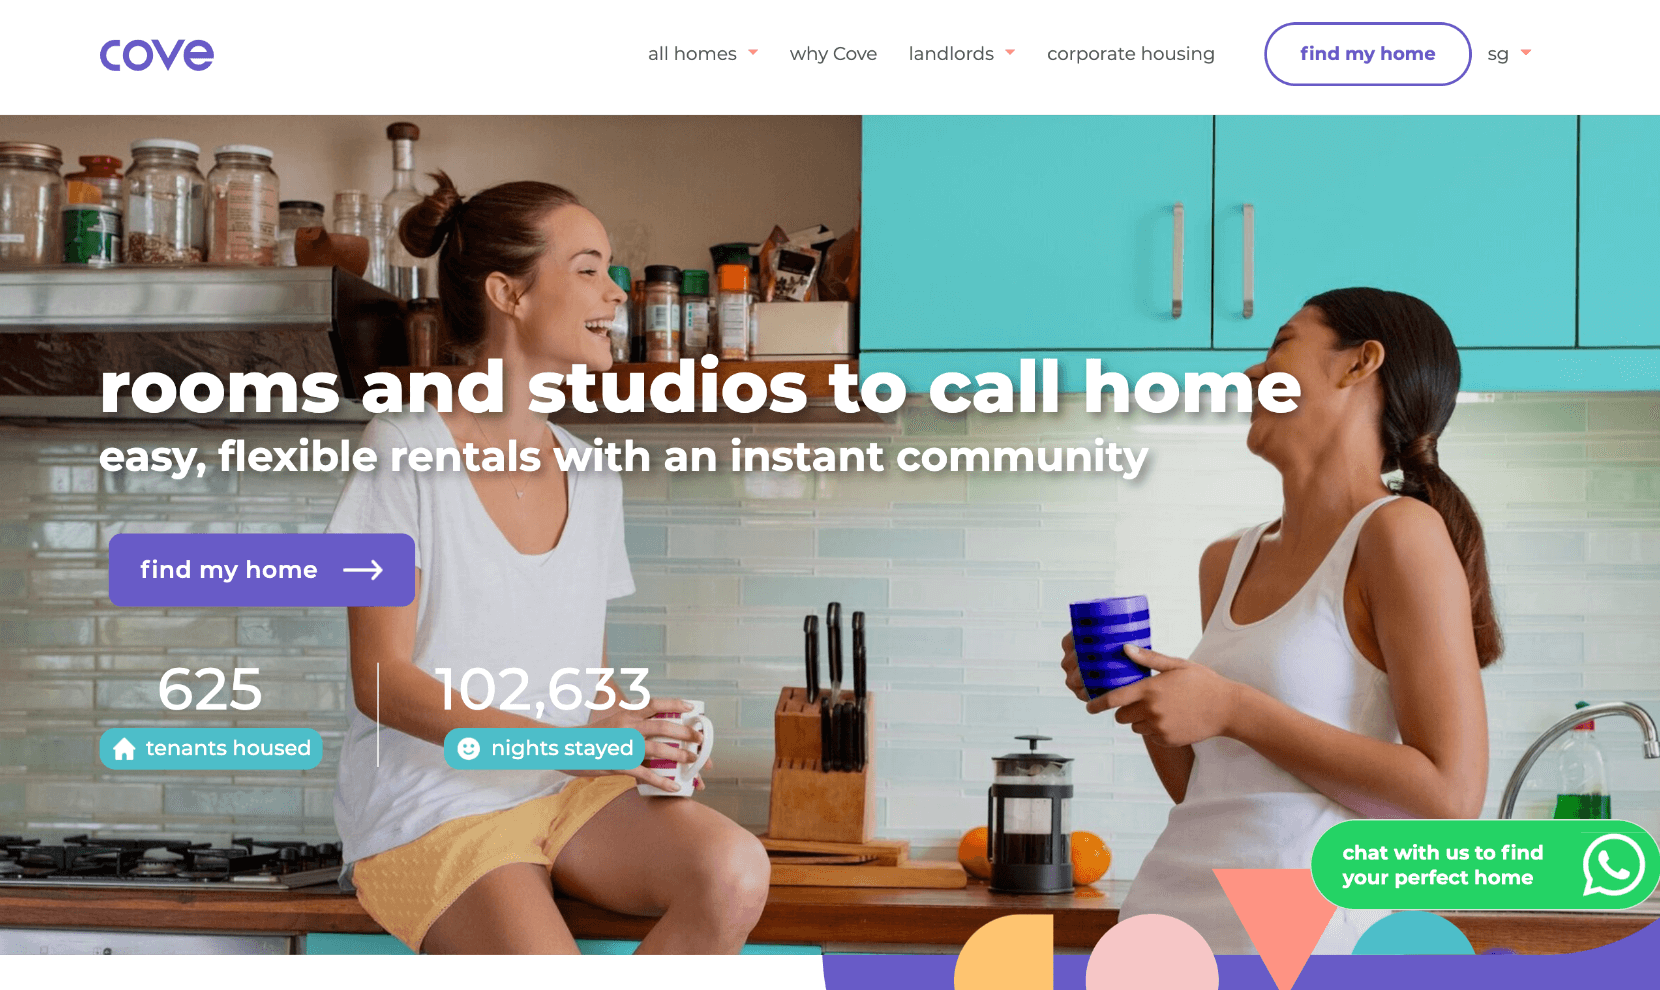 cove-a-coliving-company-raises-about-470-million-yen-to-expand-its-business-in-vietnam-and-the-philippines